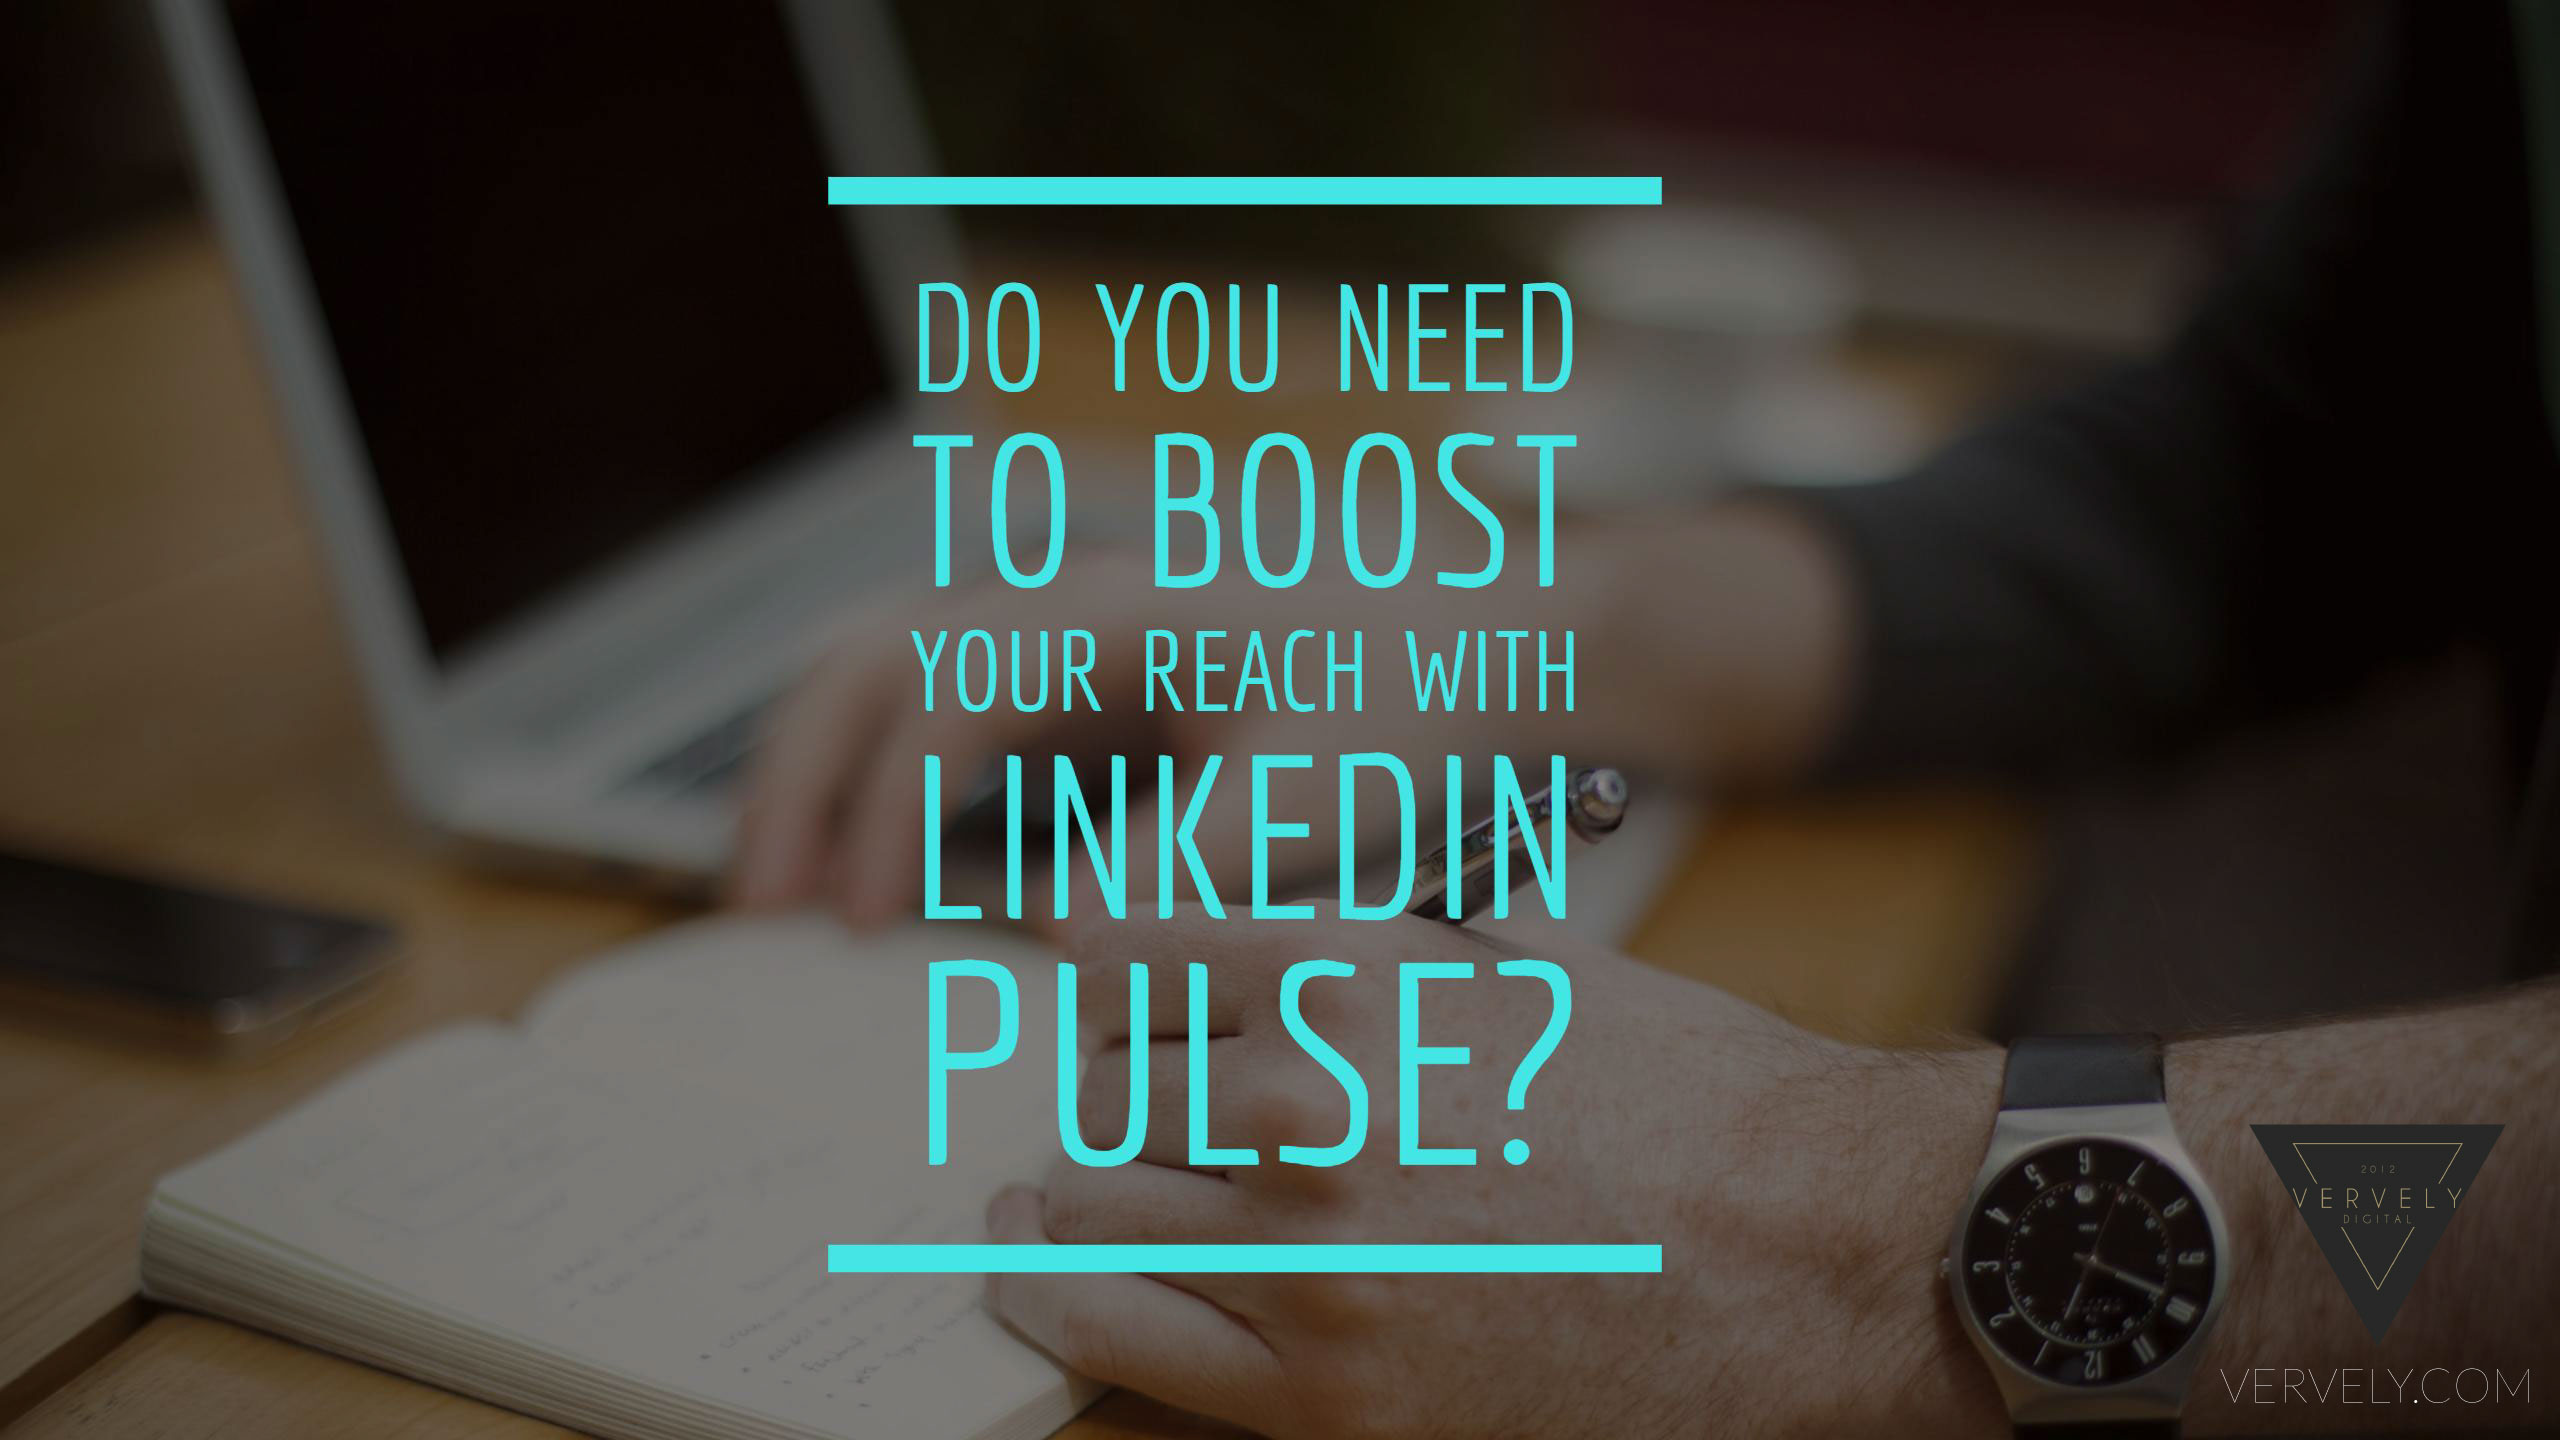 Do You Need To Boost Your Reach With LinkedIn Pulse?